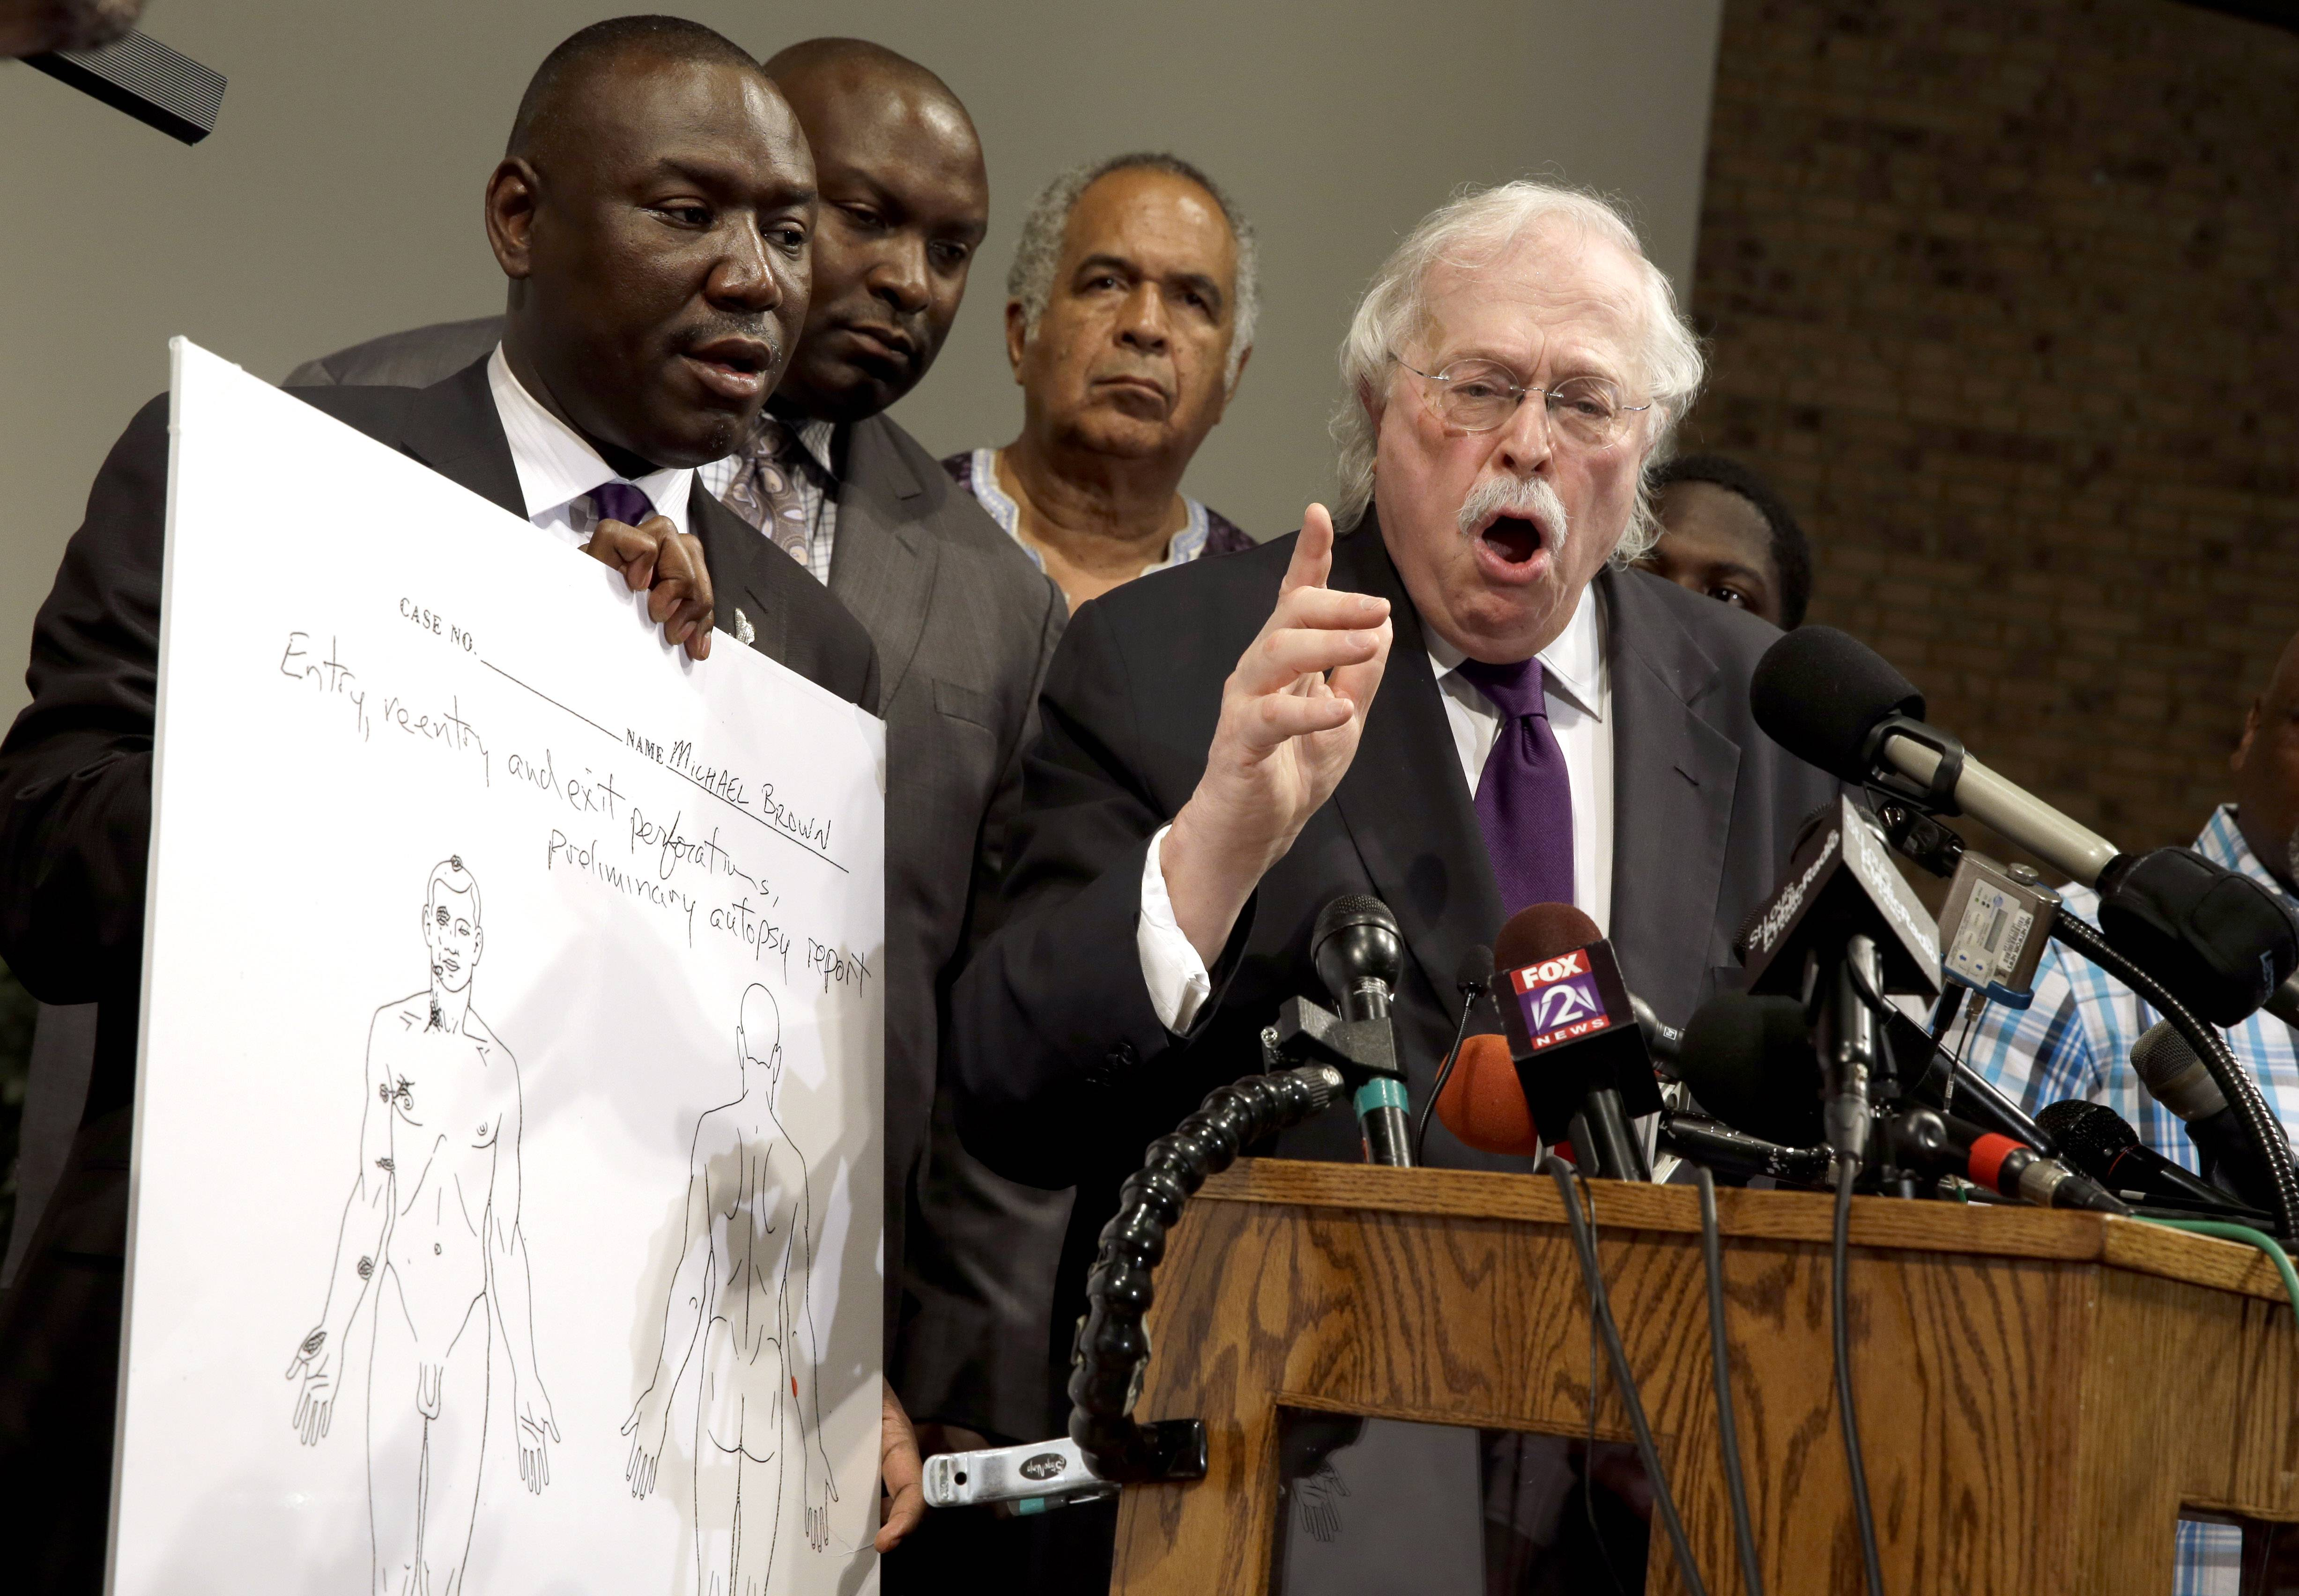 At left, Dr. Michael Baden speaks Monday as Brown family attorney Benjamin Crump holds a diagram produced during a second autopsy done on 18-year-old Michael Brown. At right, police tackle a man in Ferguson, Mo. Although there was no curfew Monday, police strictly enforced orders that protesters keep moving along the sidewalk.